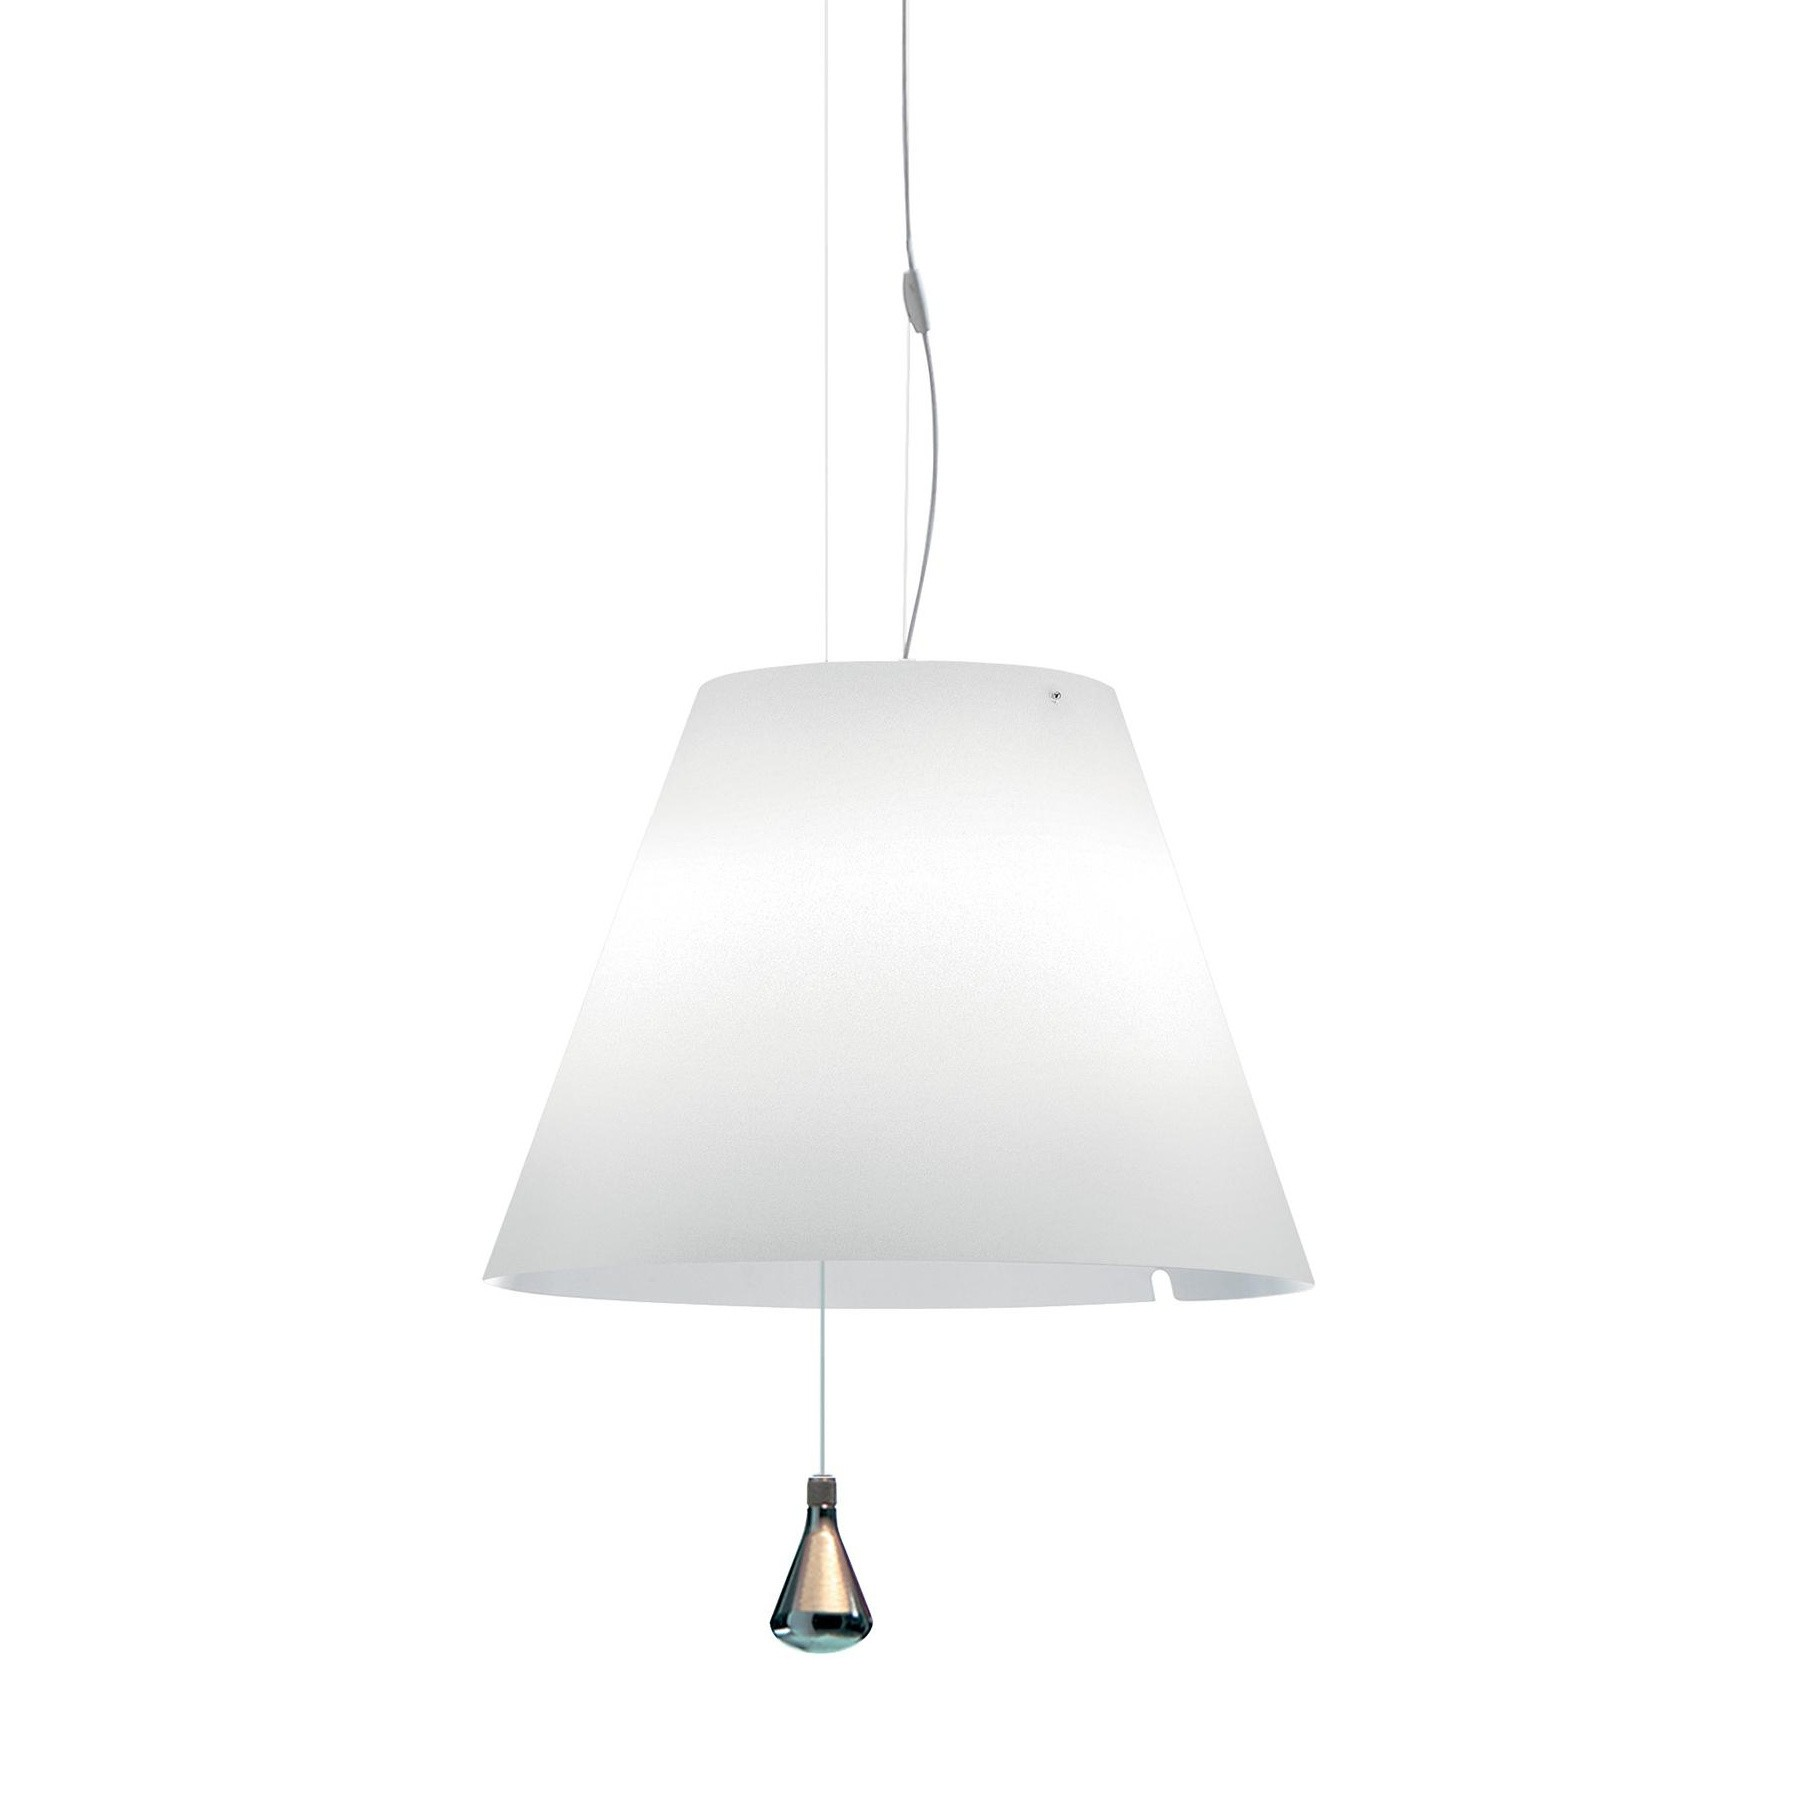 Luceplan Costanza Costanza Led Suspended Lamp With Drag Rope